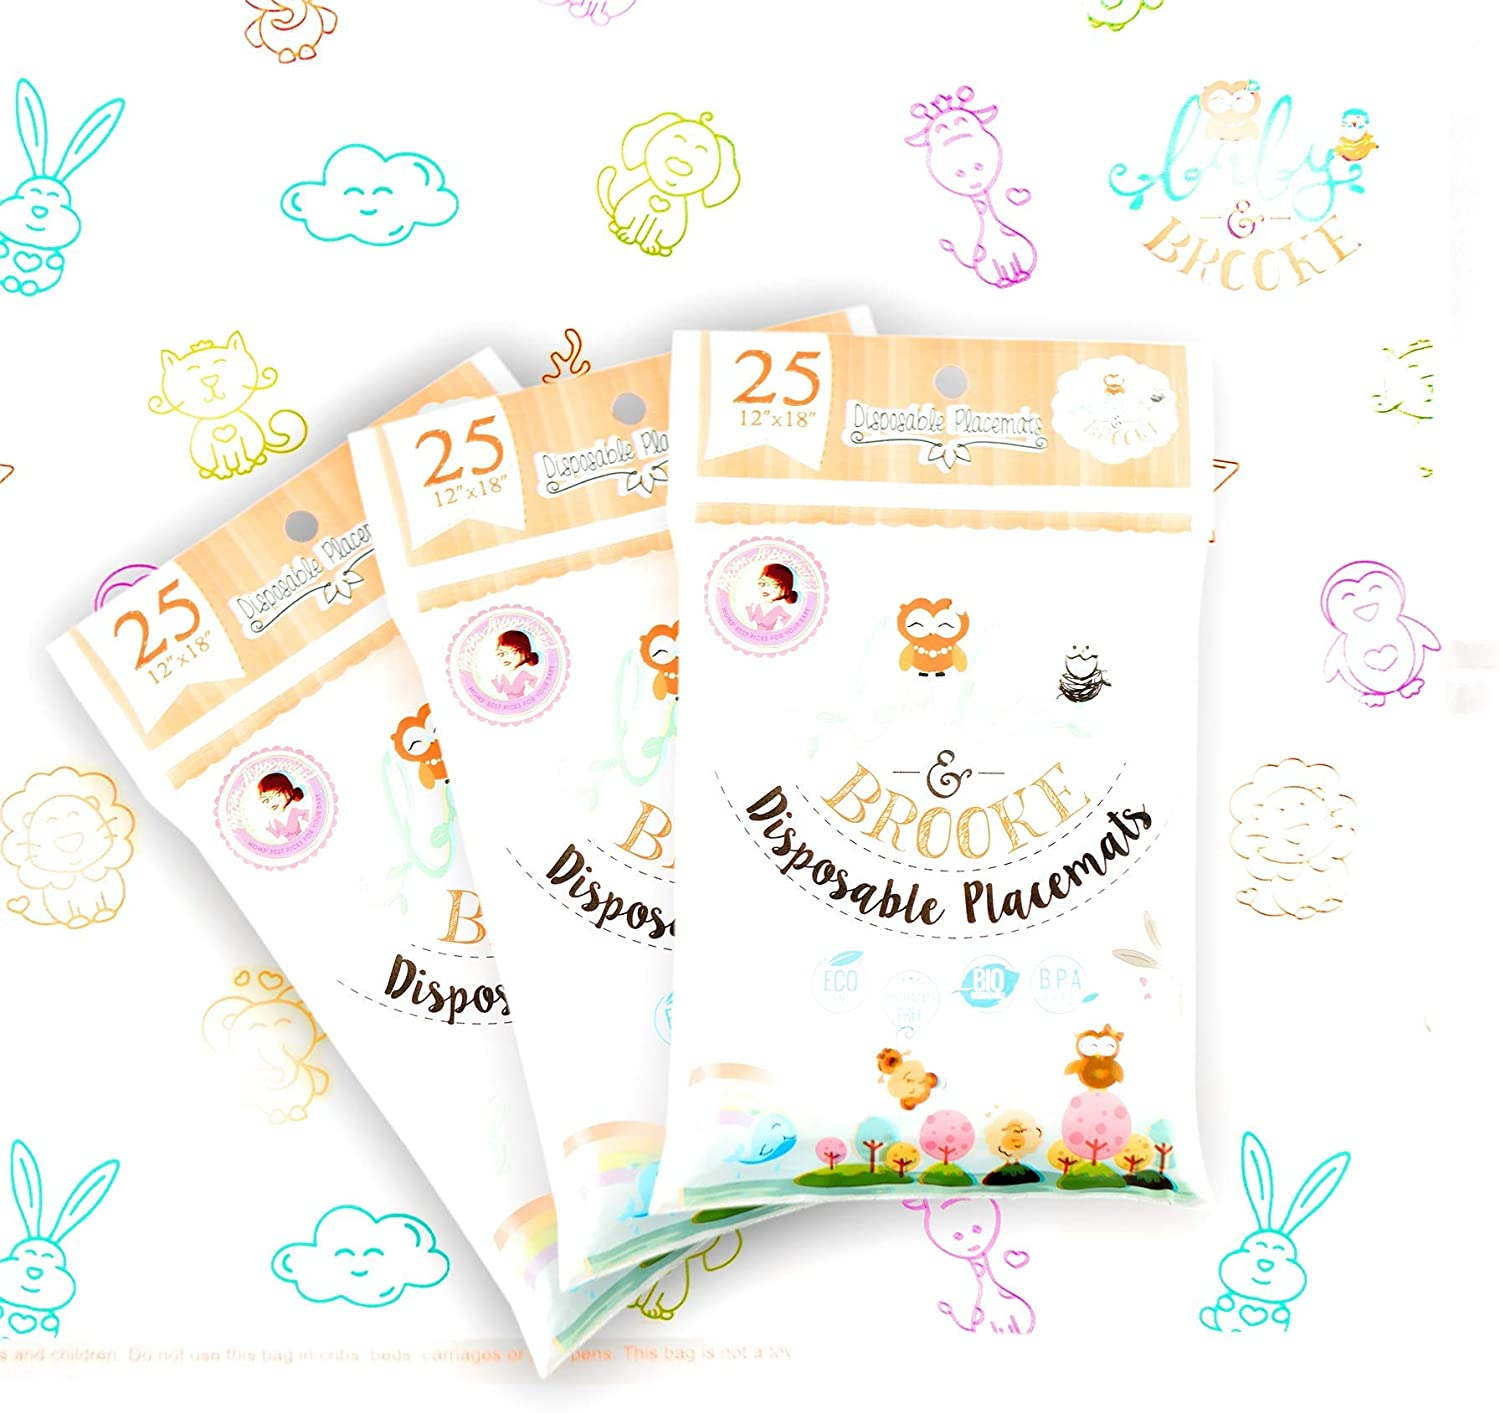 Baby and Brooke 75 SUPER STICKY Disposable Placemats for Babies - Protects Kids Against Germs and Bacteria - Easy to Pack, Apply and Remove - 3 Resealable Bags of 25 Table Placemats